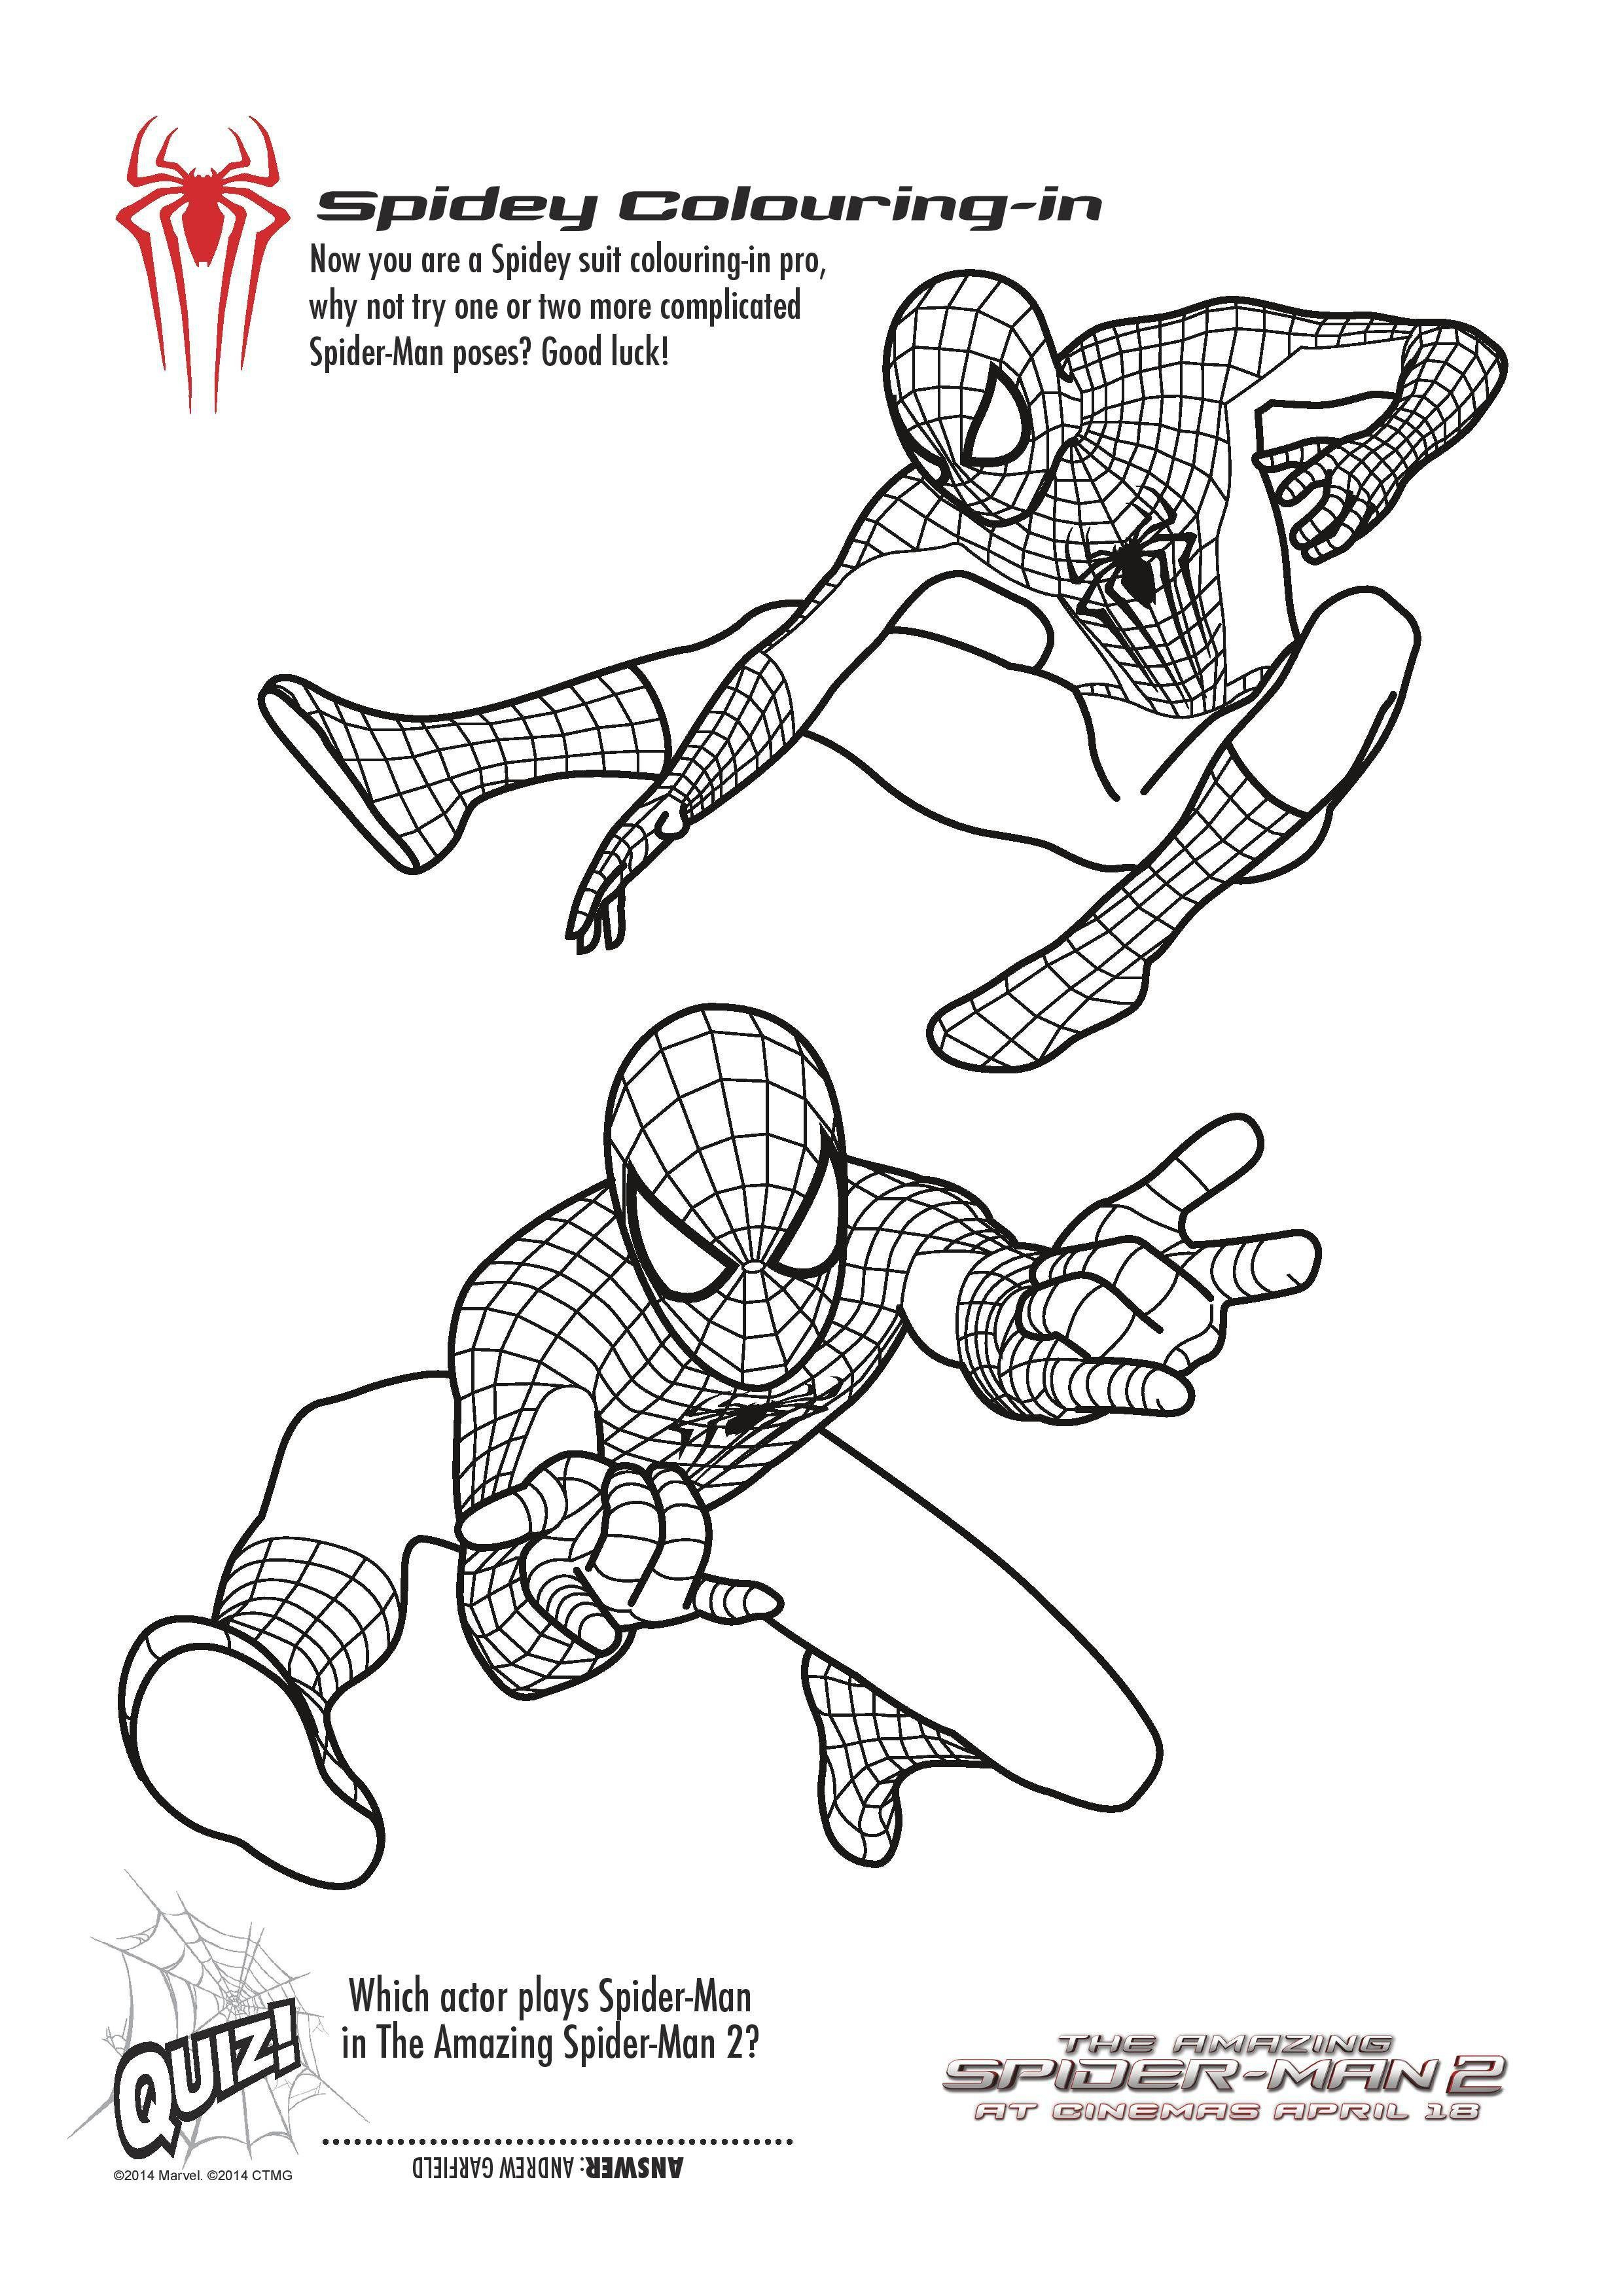 Coloring Pages : Coloringges Free Printable Spiderman Colouring And - Free Printable Spiderman Coloring Pages